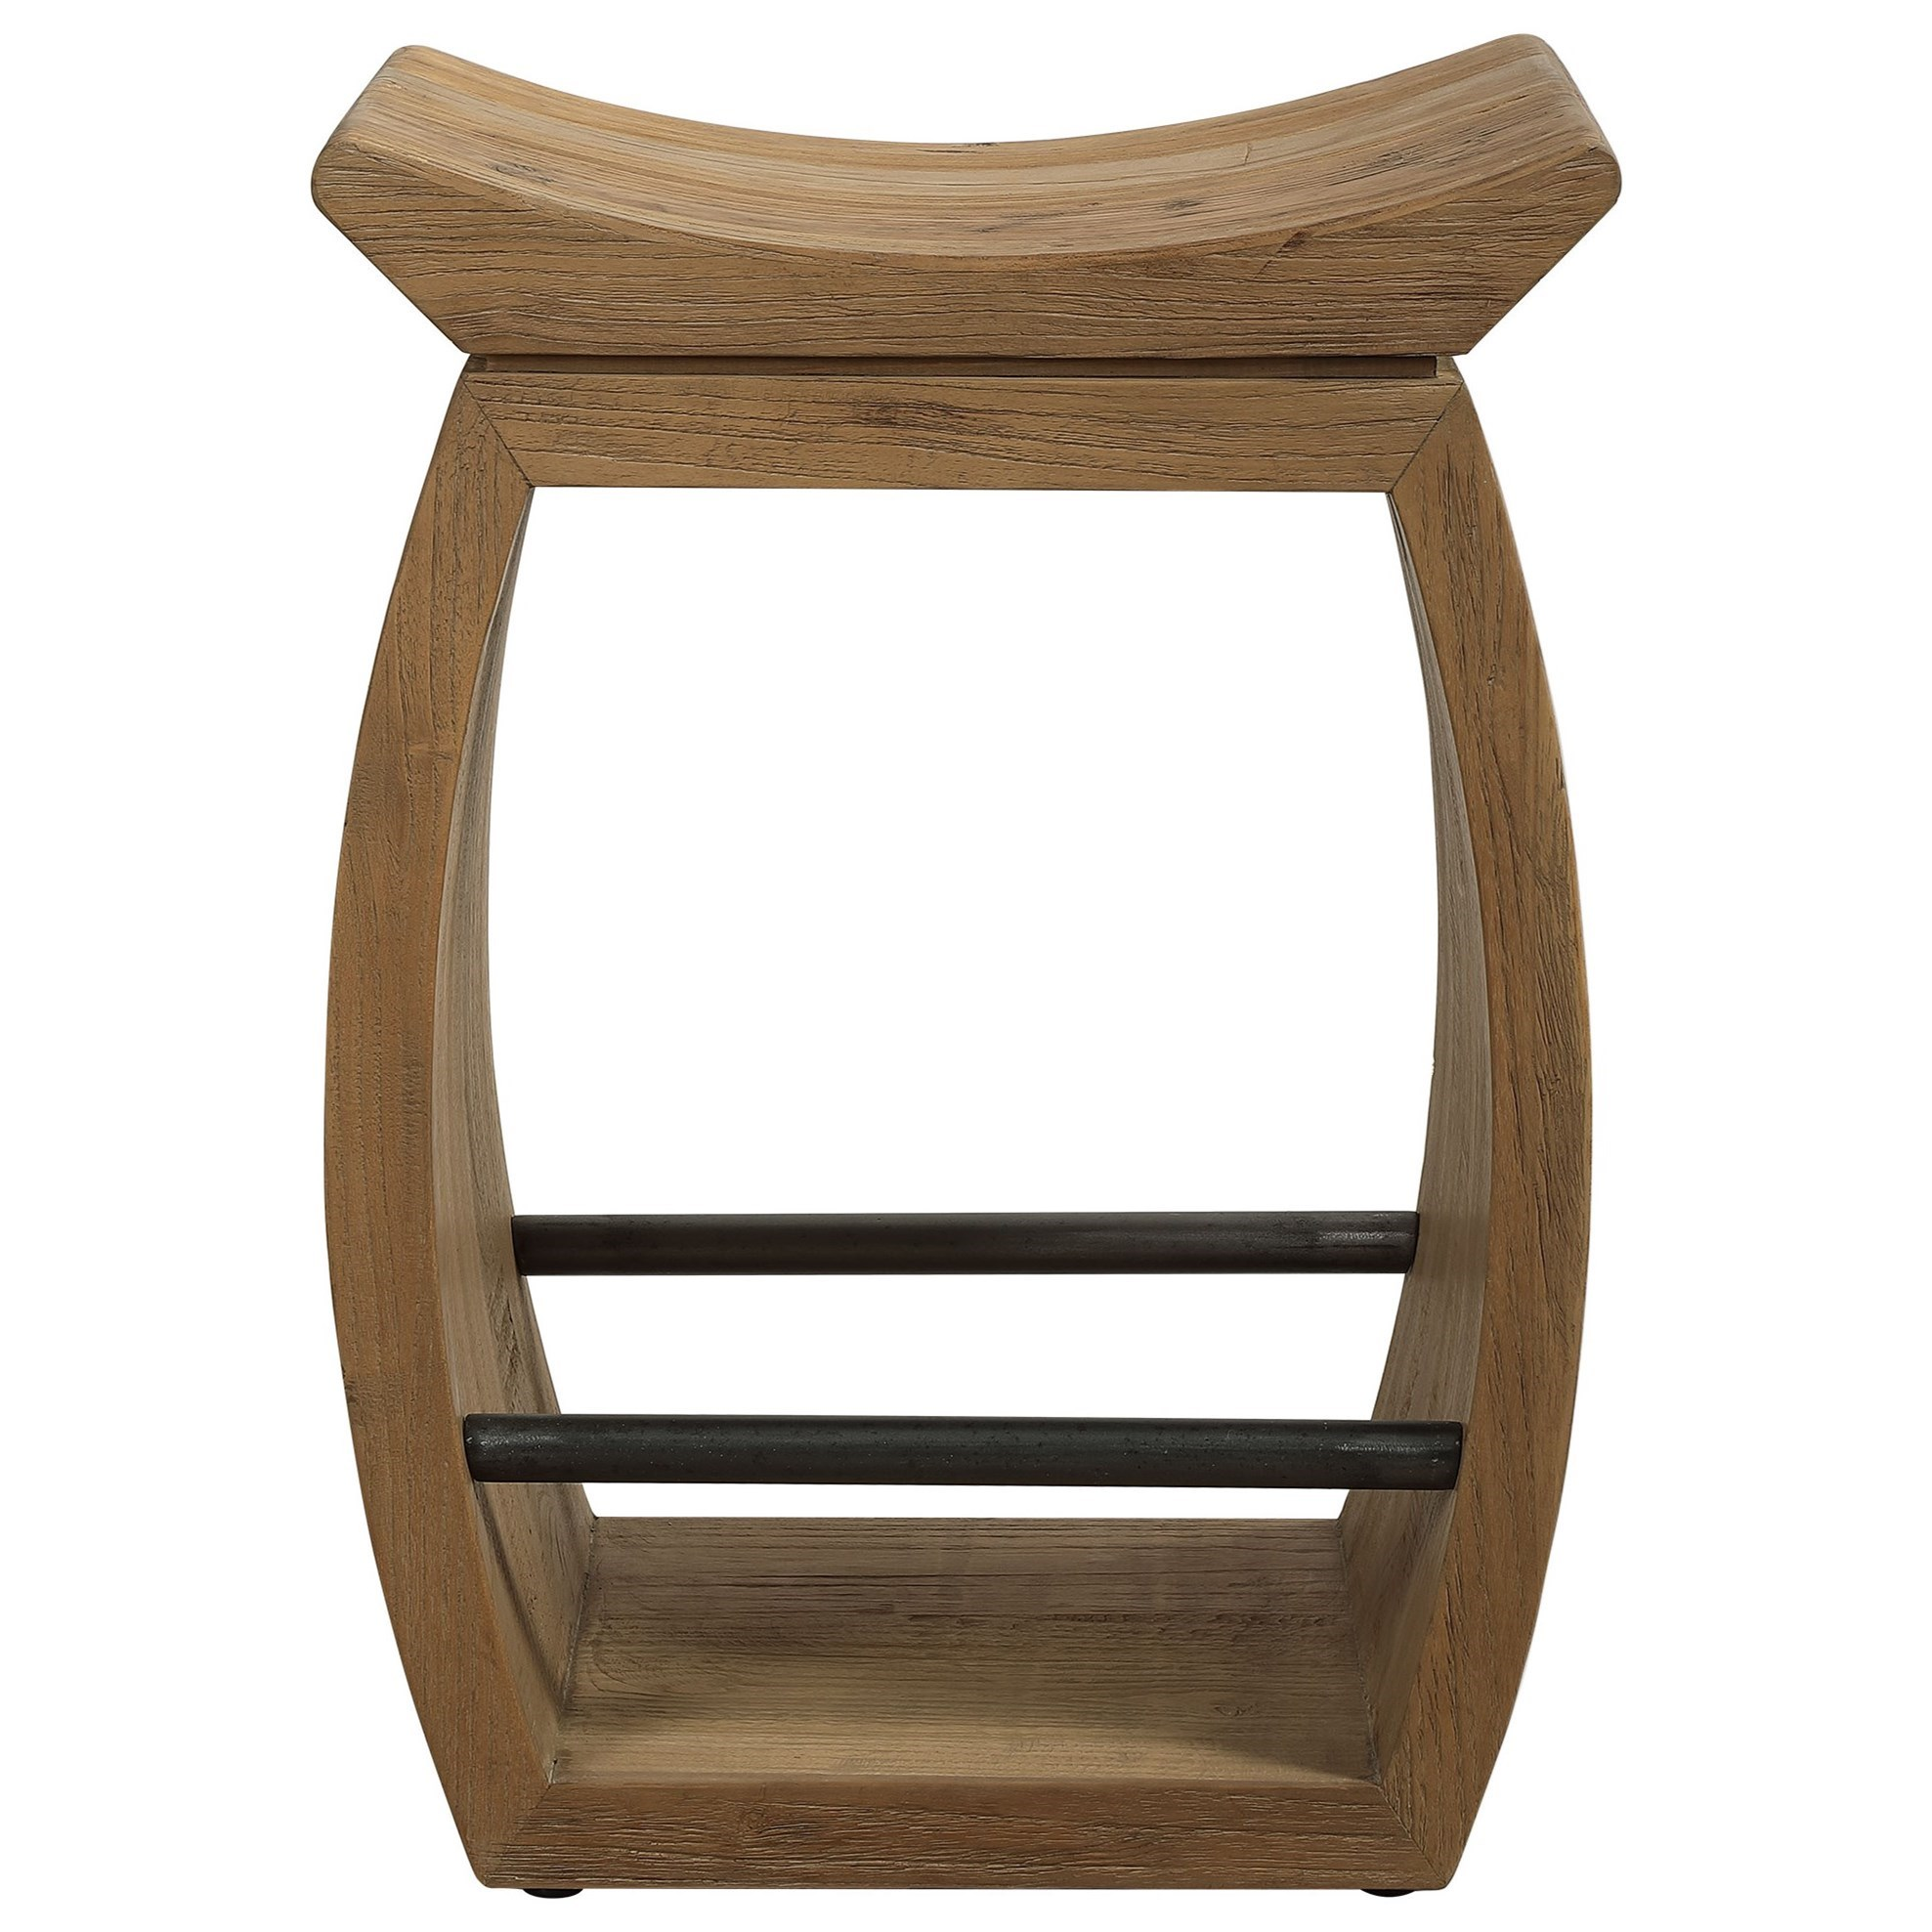 Accent Furniture - Stools Connor Modern Wood Counter Stool by Uttermost at Goffena Furniture & Mattress Center